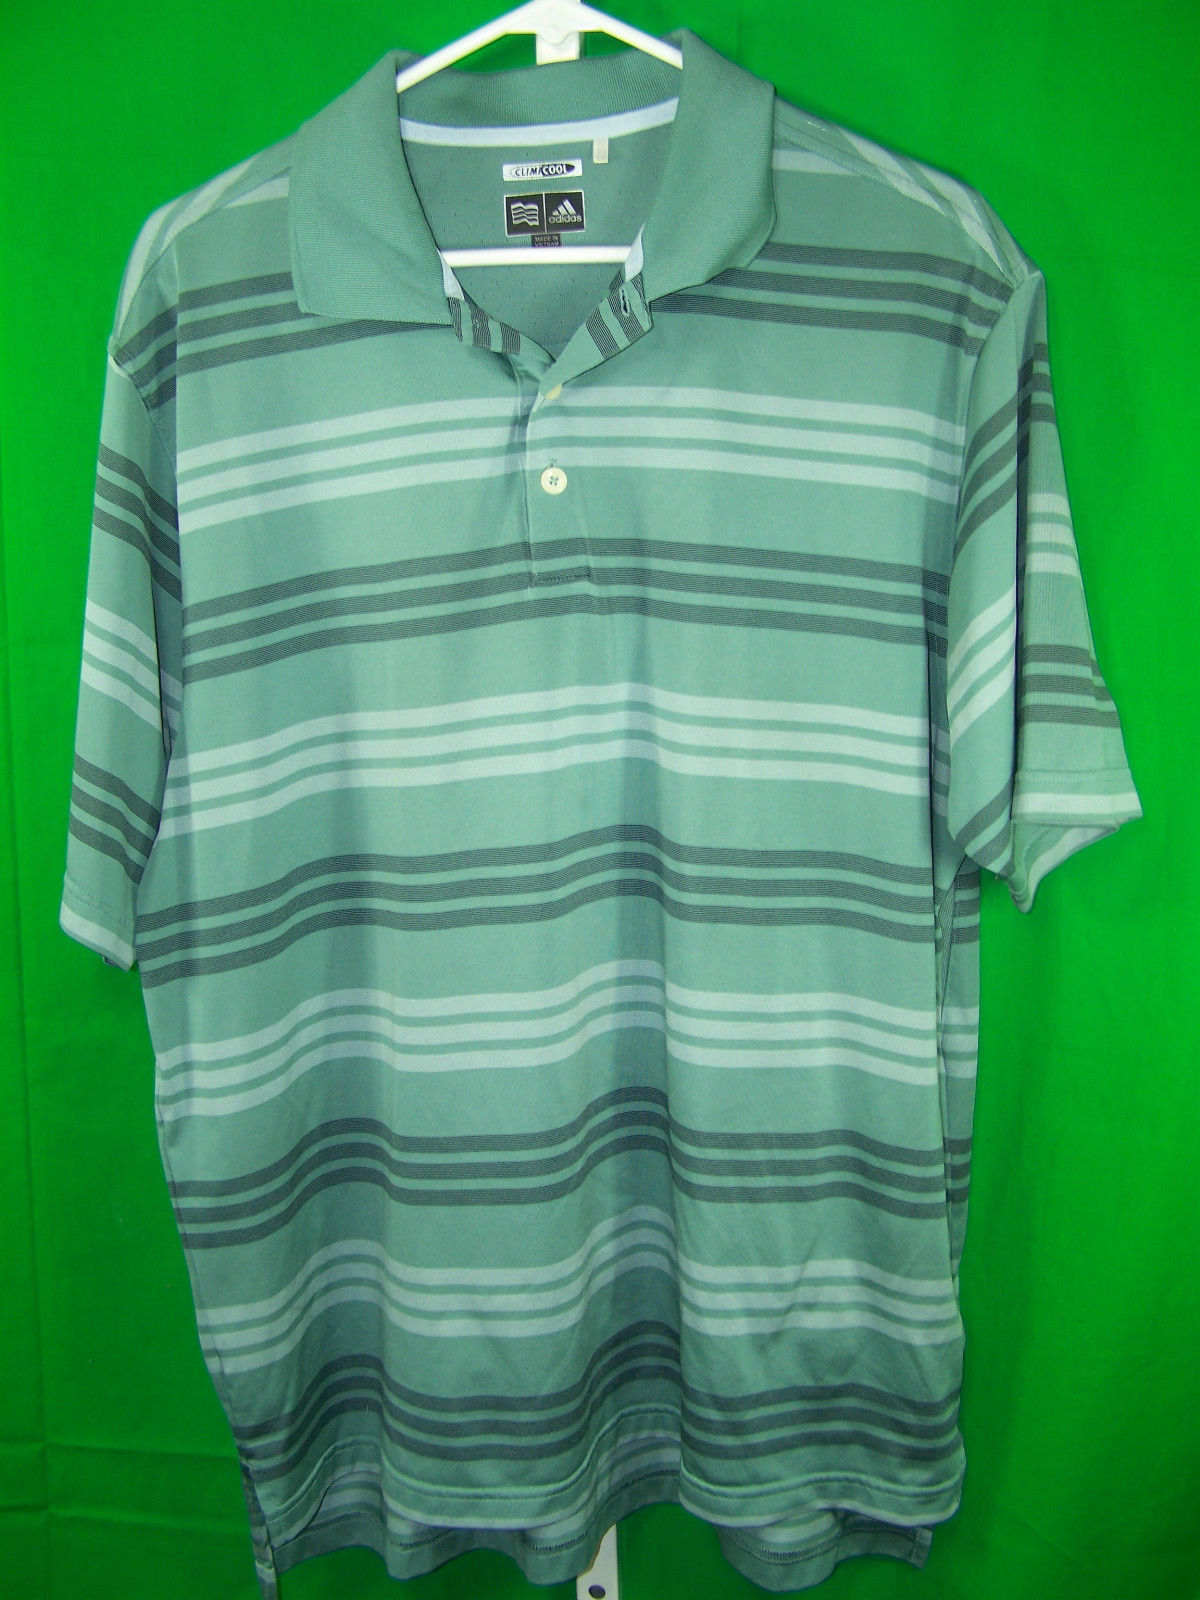 Adidas mens sz large short sleeve pullover shirt no for Mens pullover shirts short sleeve